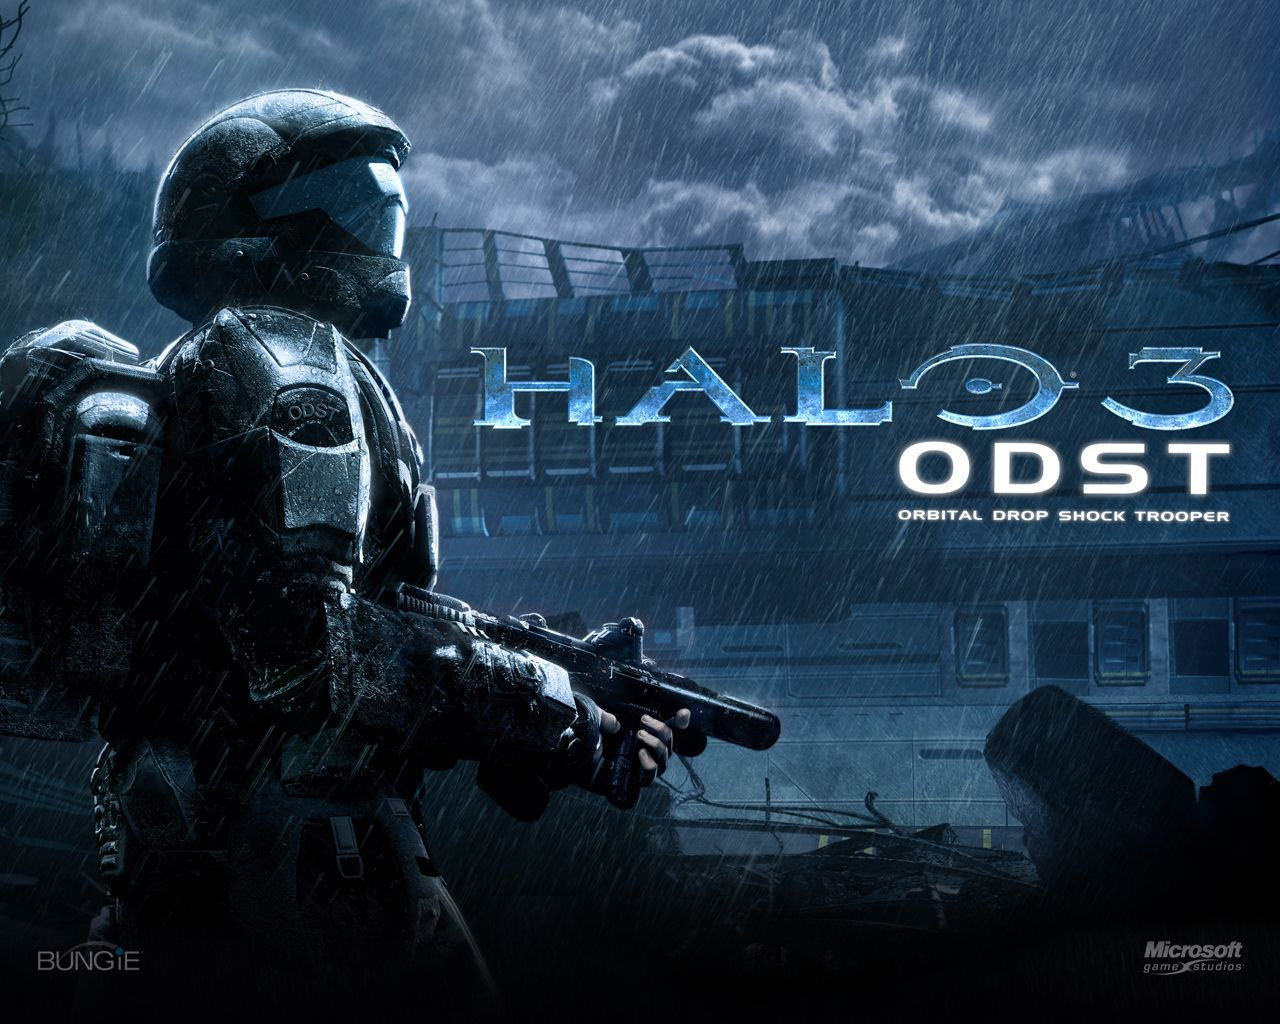 Halo 3 ODST : Le comparatif des versions Xbox One et Xbox 360